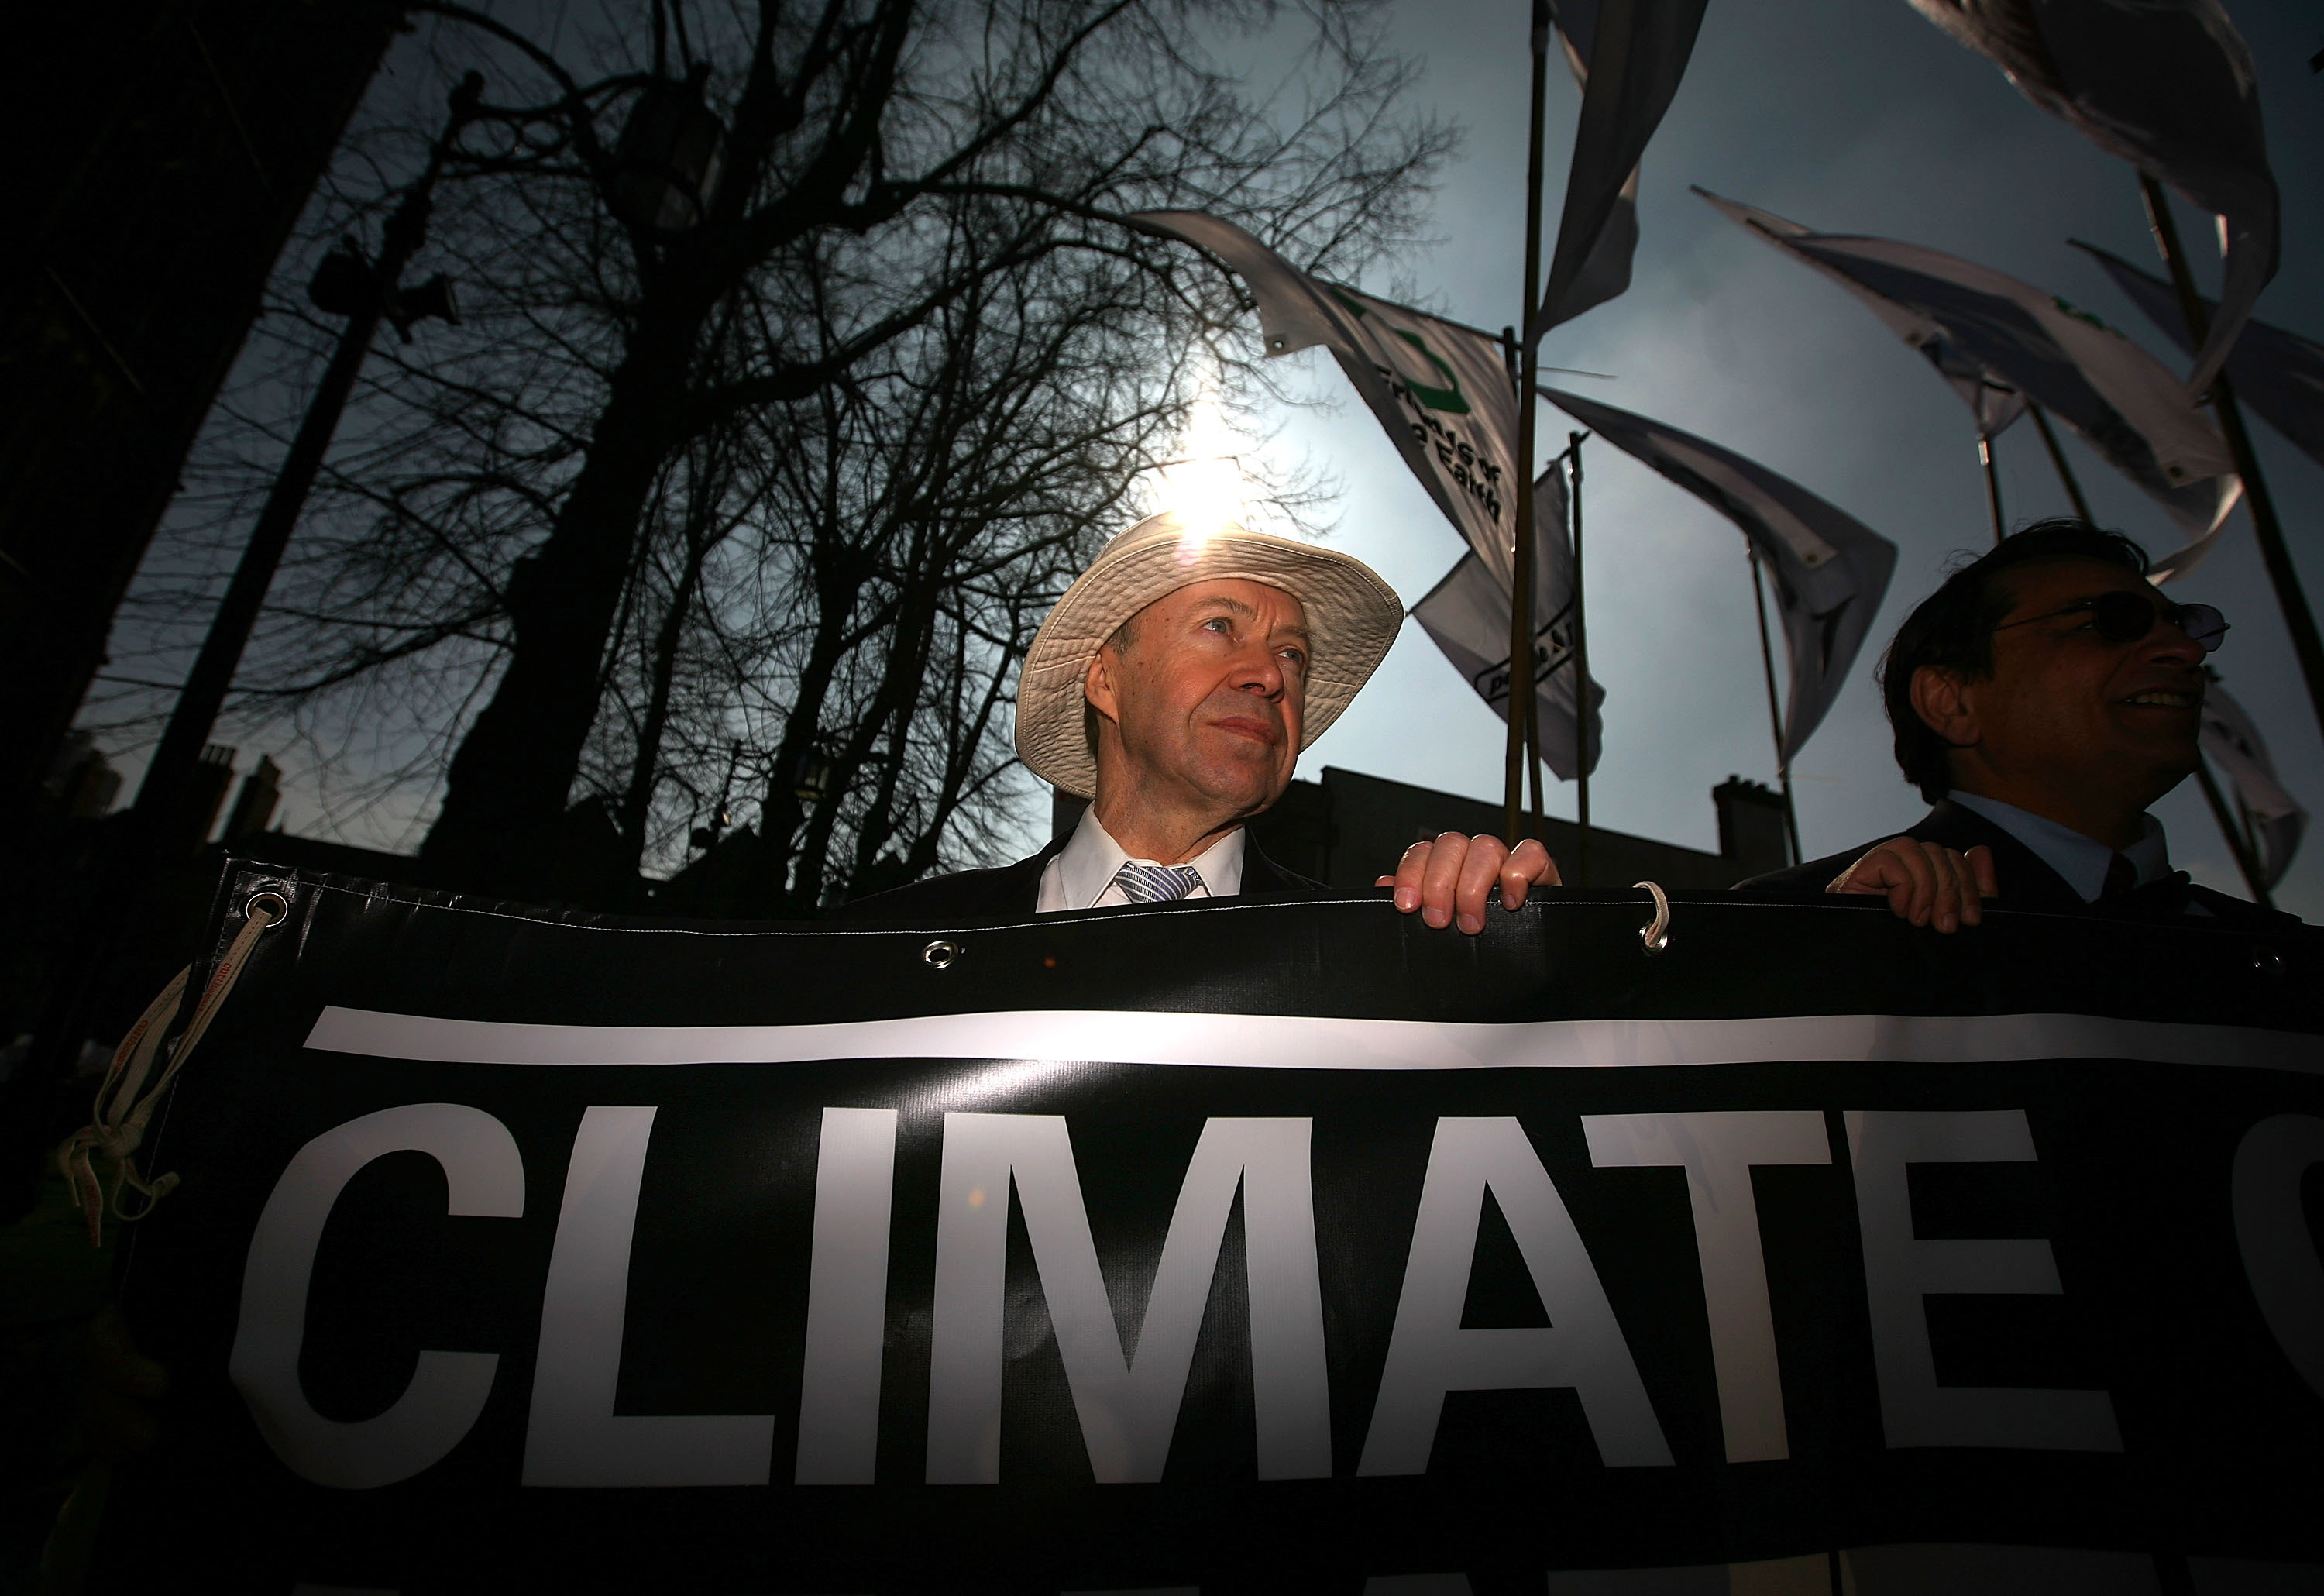 Scientist and climatologist James Hansen takes part in a mock funeral parade during a Climate Change Campaign Action Day on March 19, 2009 in Coventry, England.